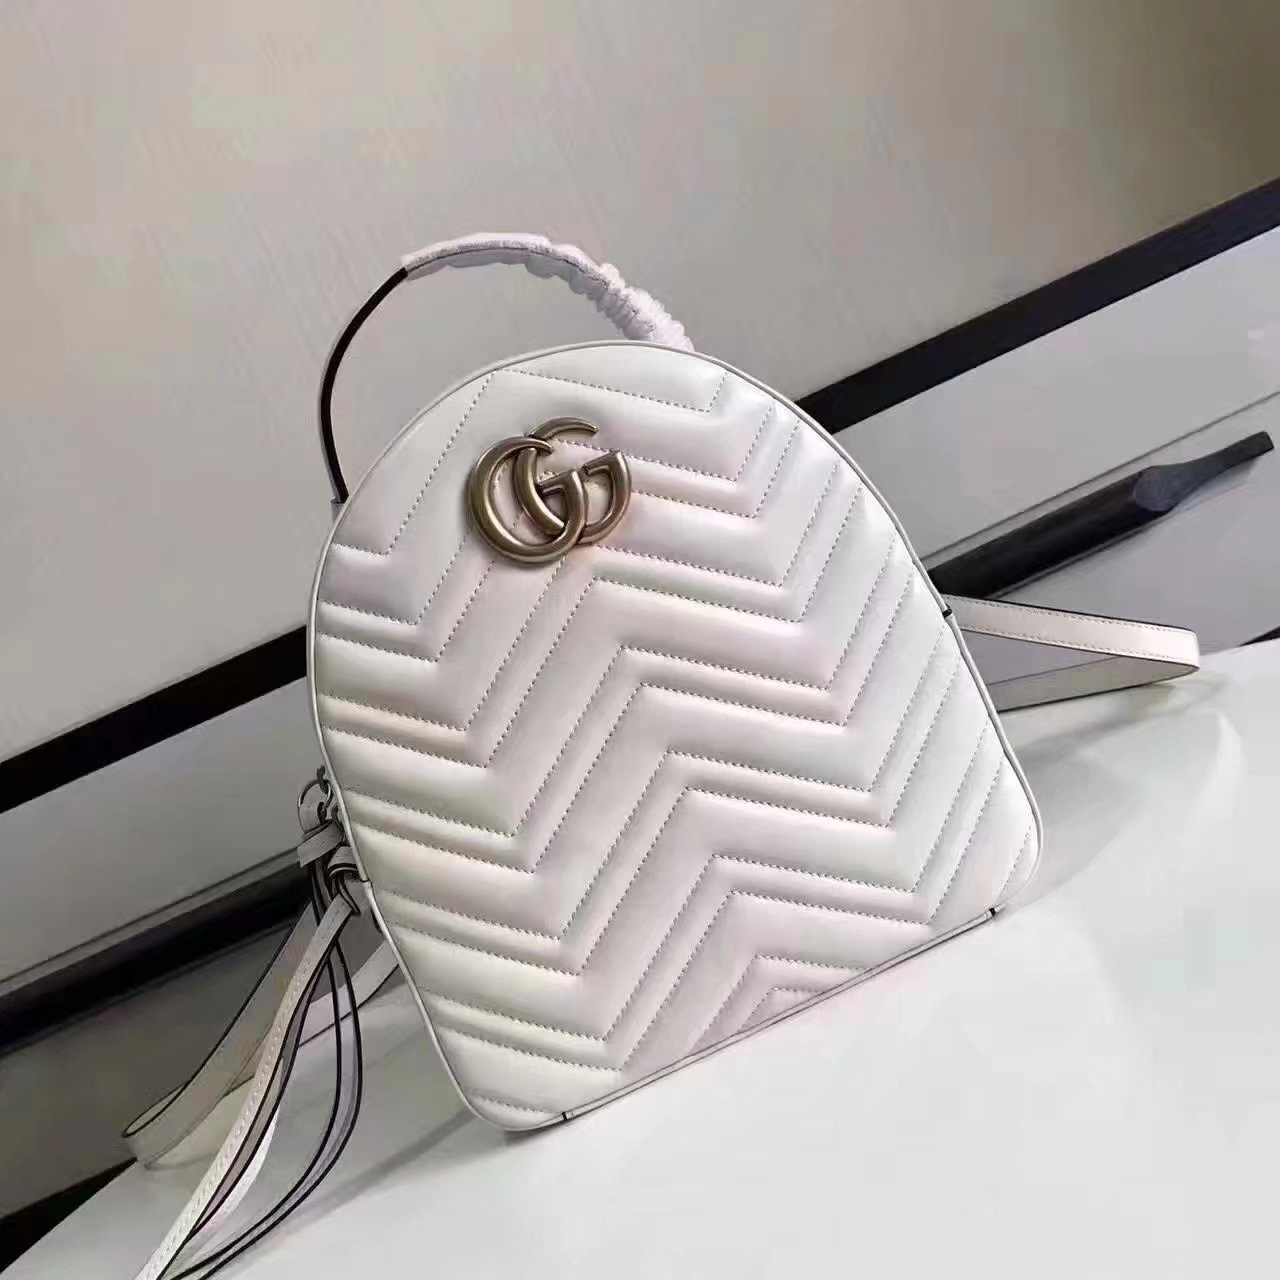 Top Quality Gucci 476671 GG Marmont Quilted Leather Backpack White